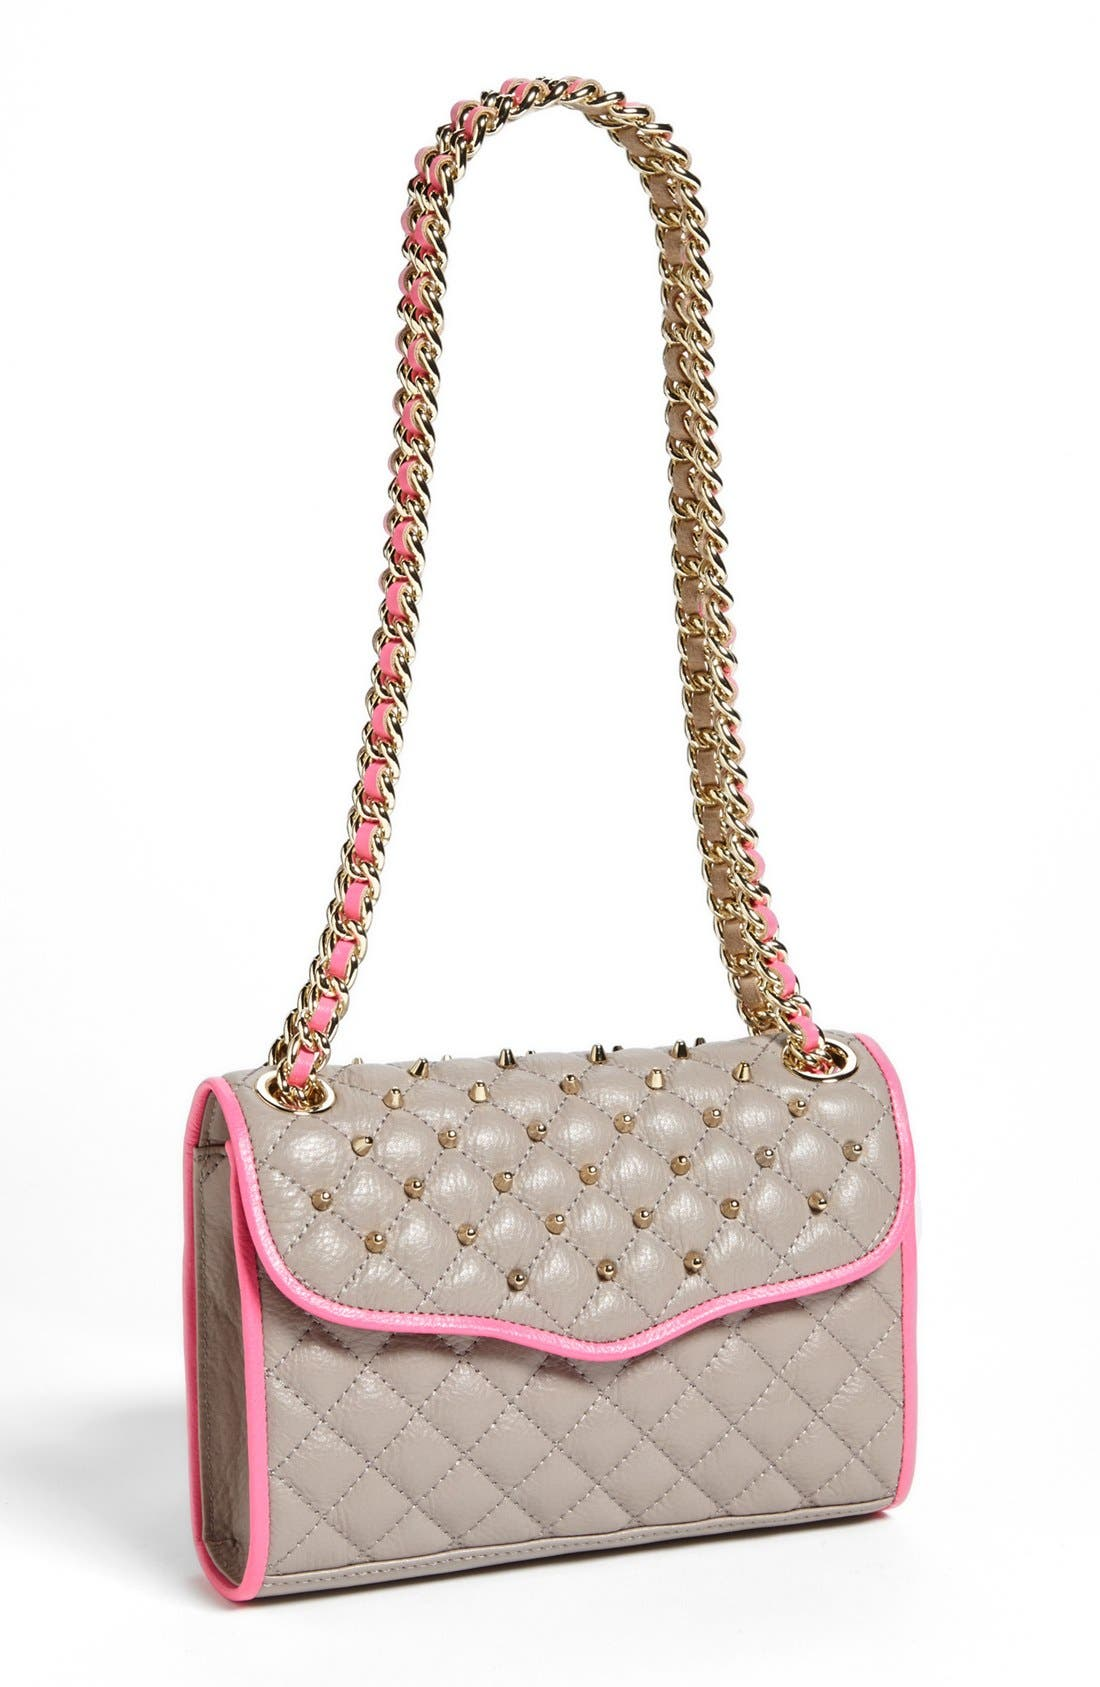 Alternate Image 1 Selected - Rebecca Minkoff 'Affair - Mini Studded' Convertible Crossbody Bag